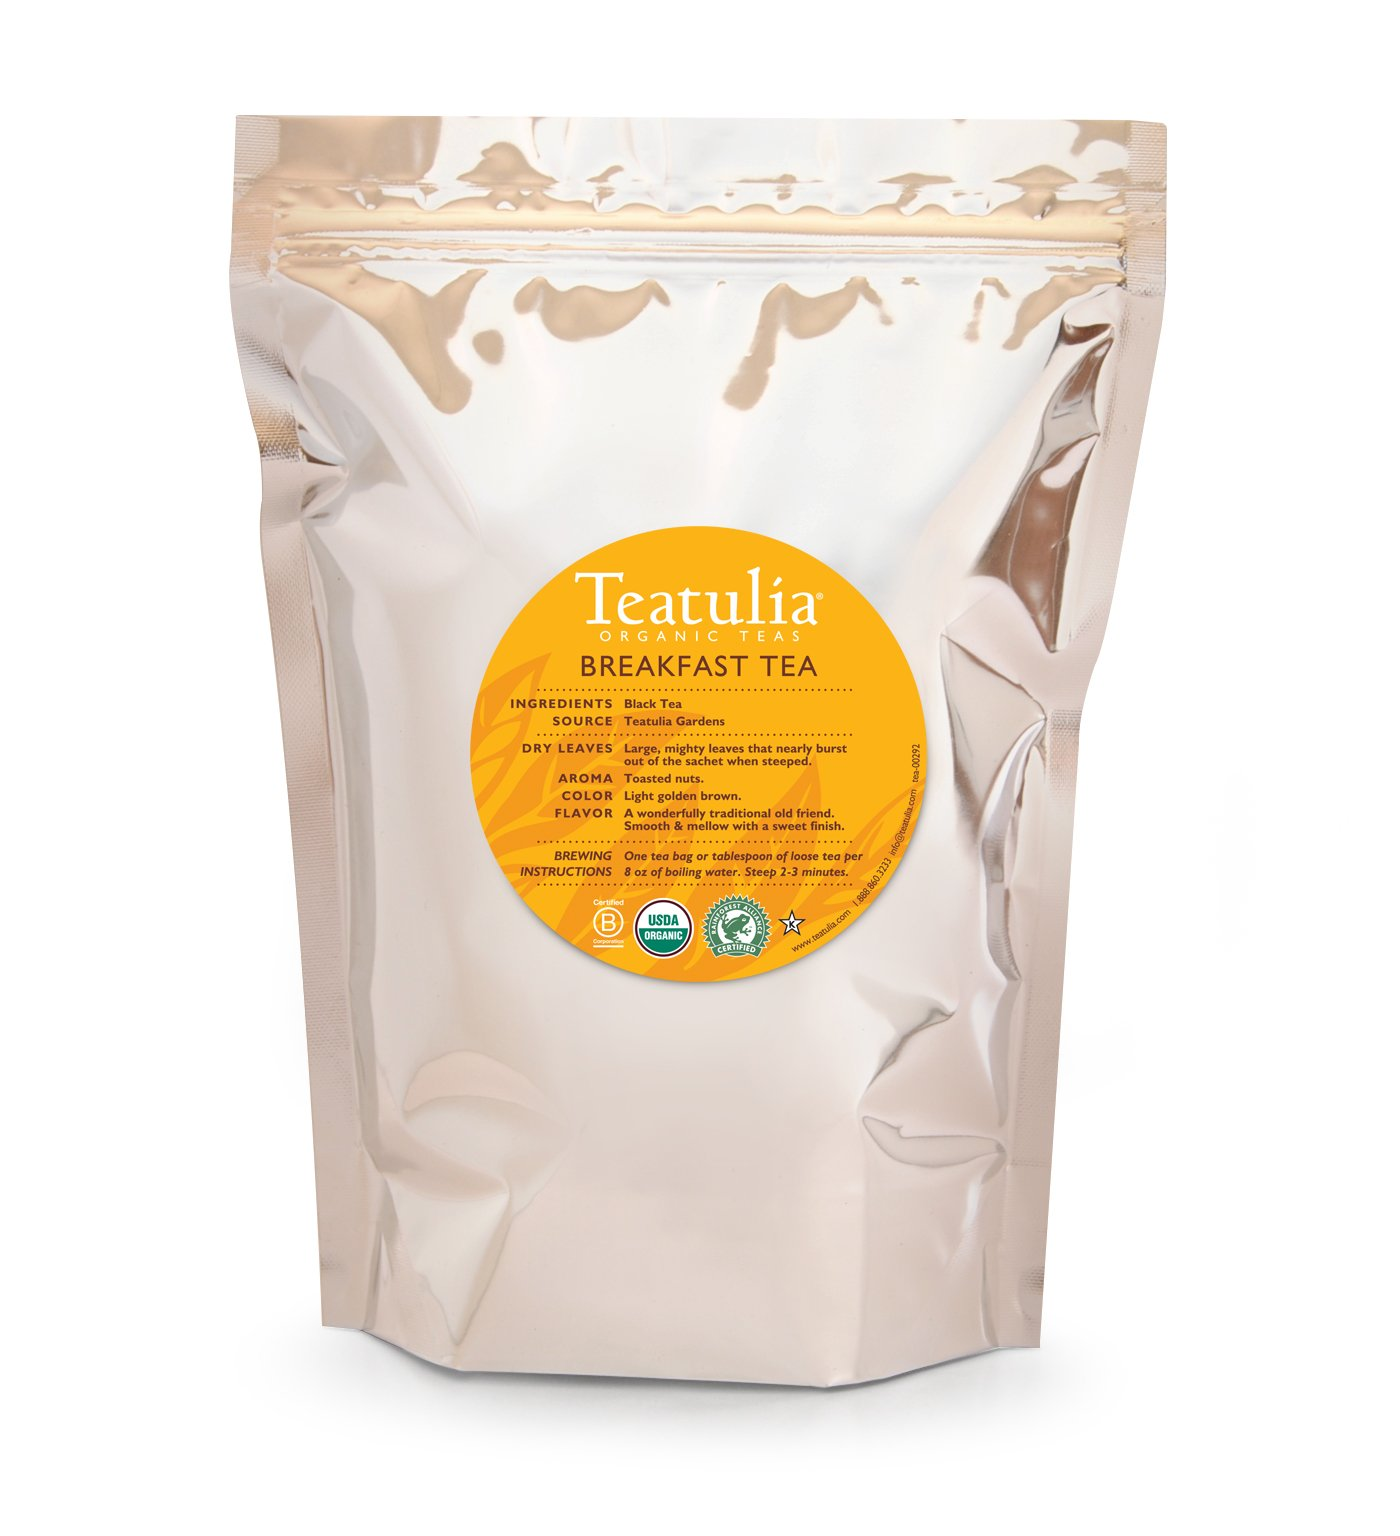 Teatulia Organic Breakfast Black Tea - 50 Premium Pyramid Bags by Teatulia